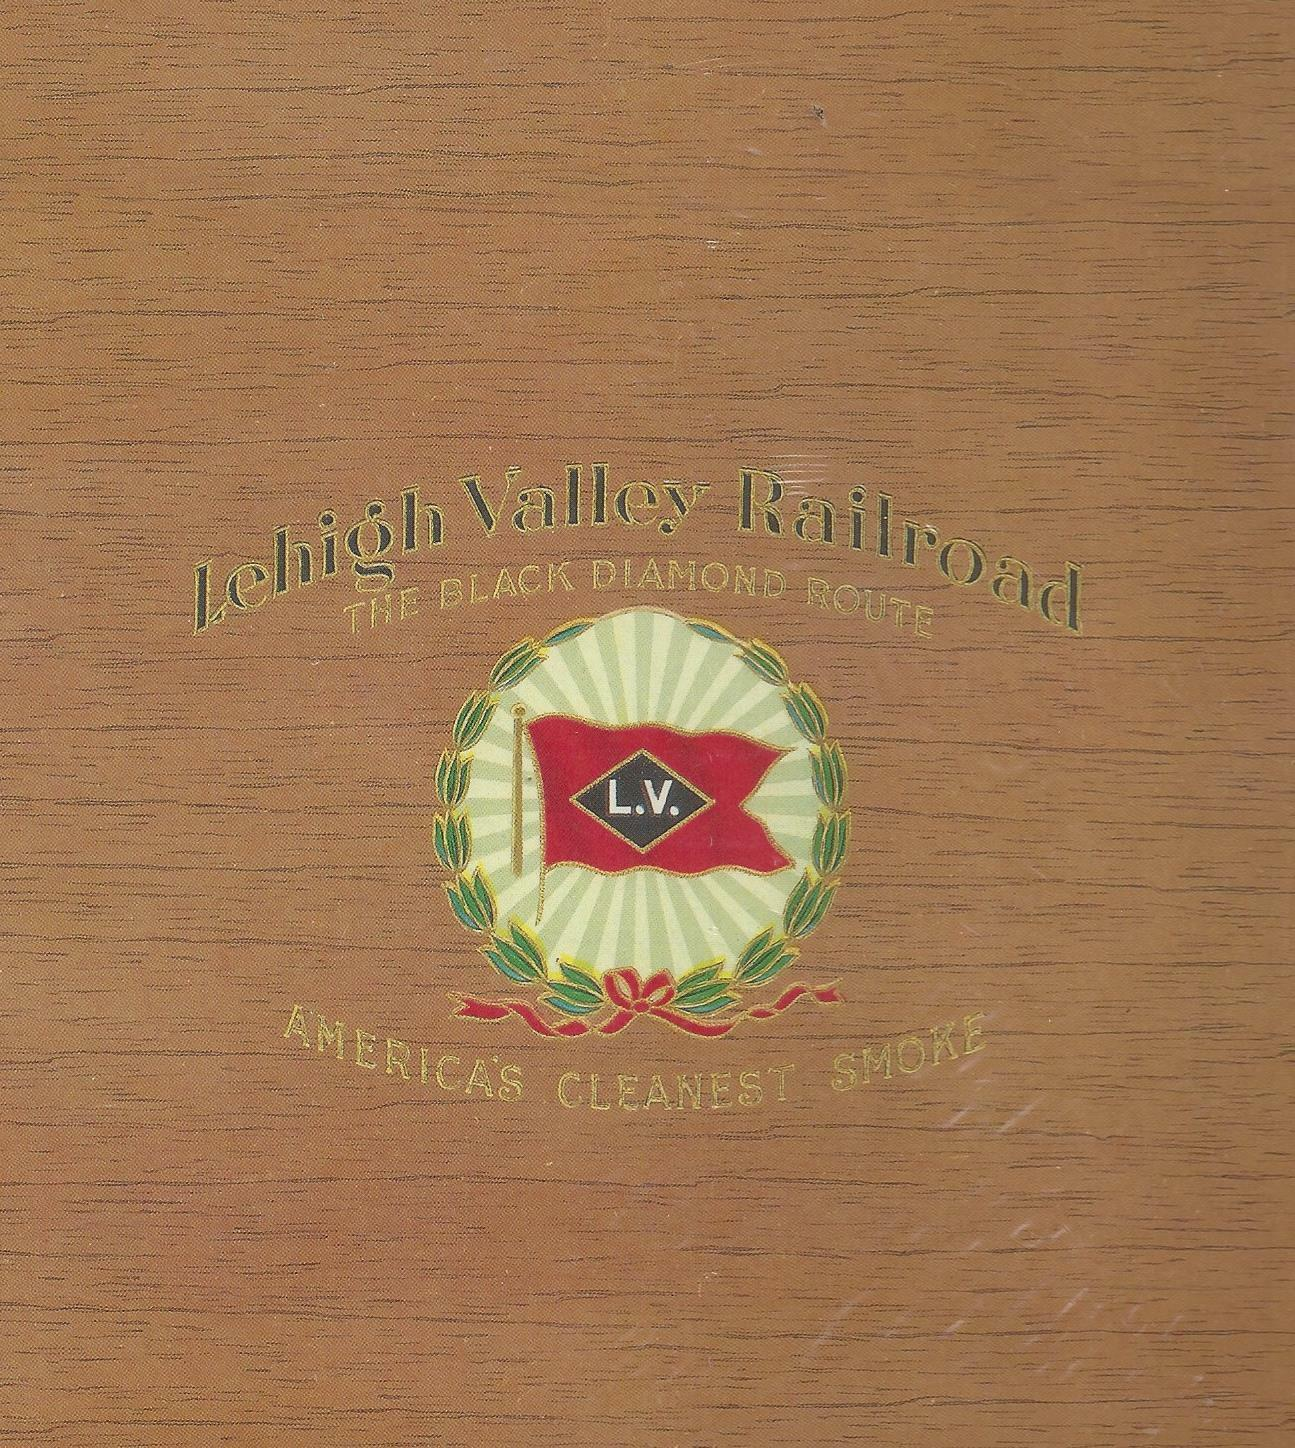 LEHIGH VALLEY Railroad The Wyoming and Buffalo Divisions NEW BOOK -